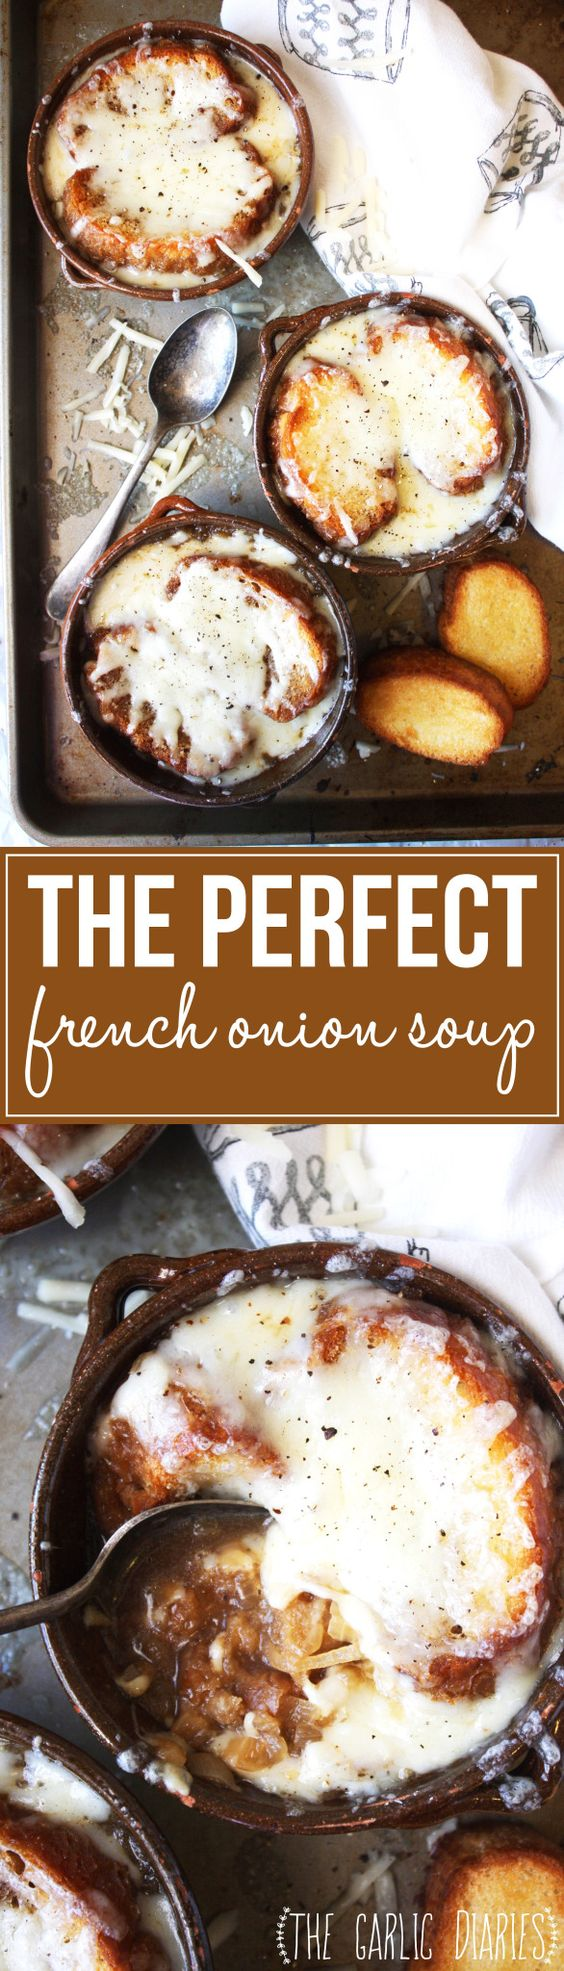 The Perfect French Onion Soup Recipe | The Garlic Diaries - The BEST Homemade Soups Recipes - Easy, Quick and Yummy Lunch and Dinner Family Favorites Meals Ideas